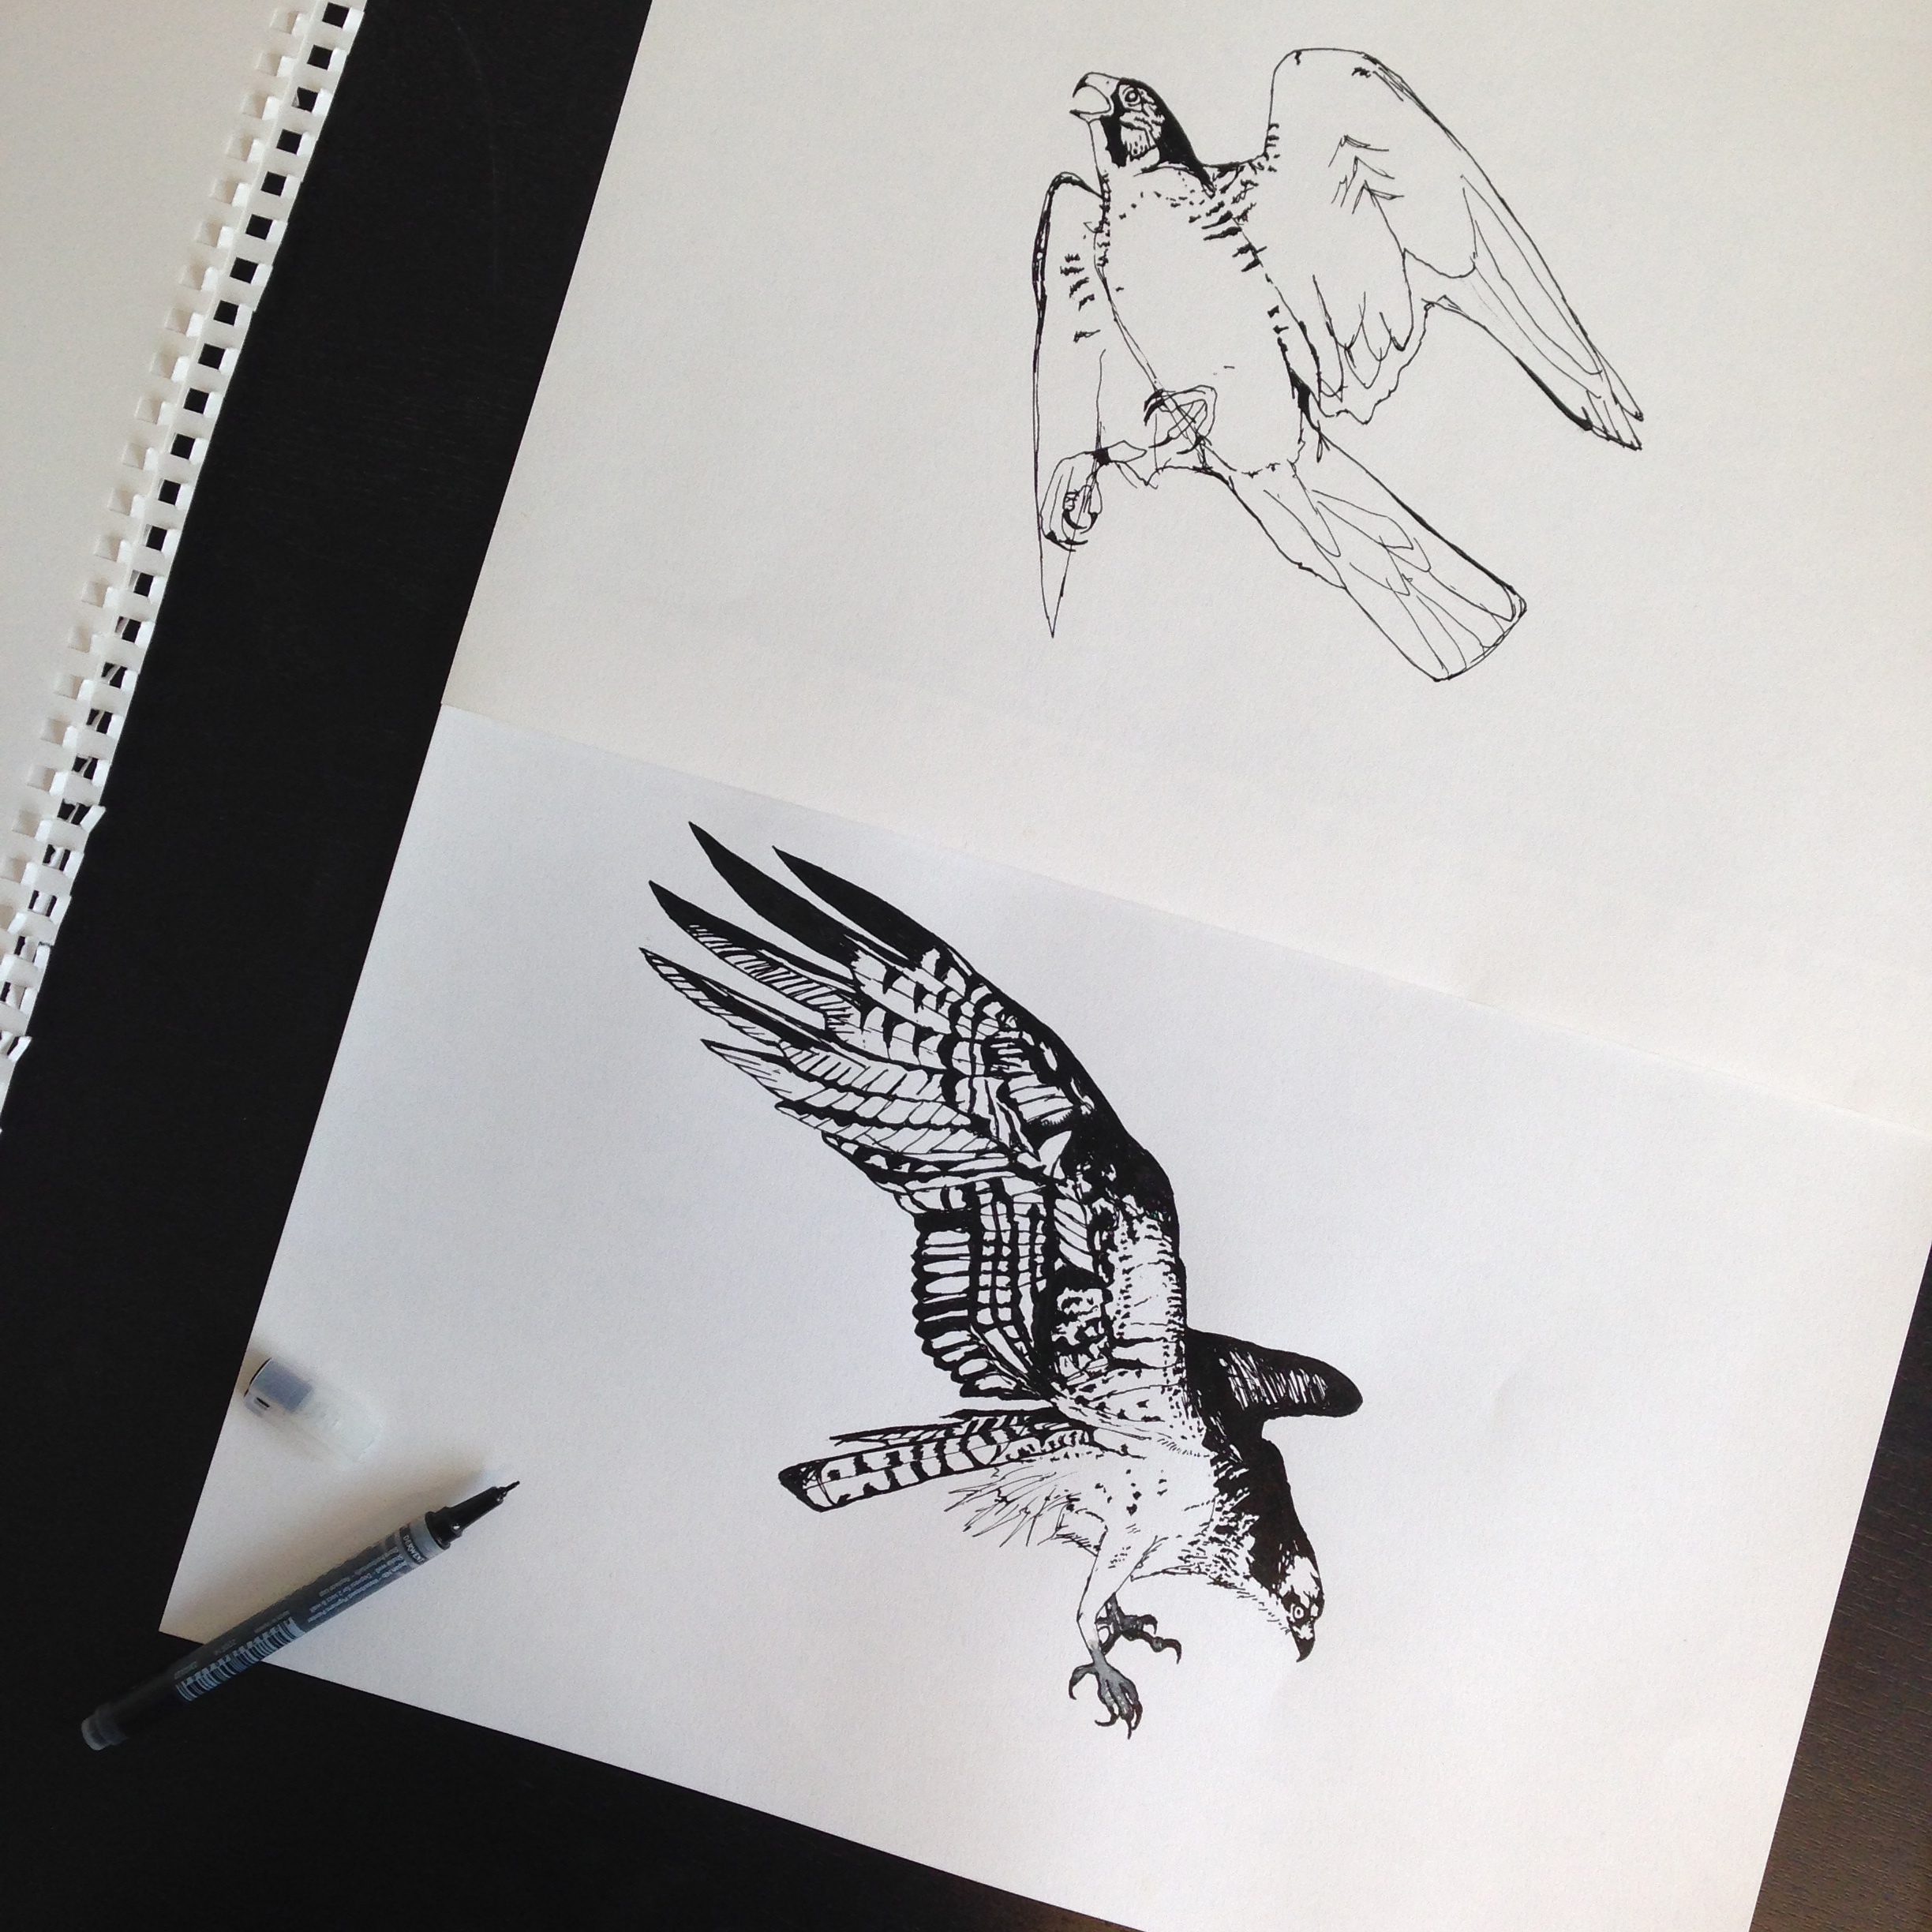 Hand drawn birds of prey, using 'Line Painter' black pen.